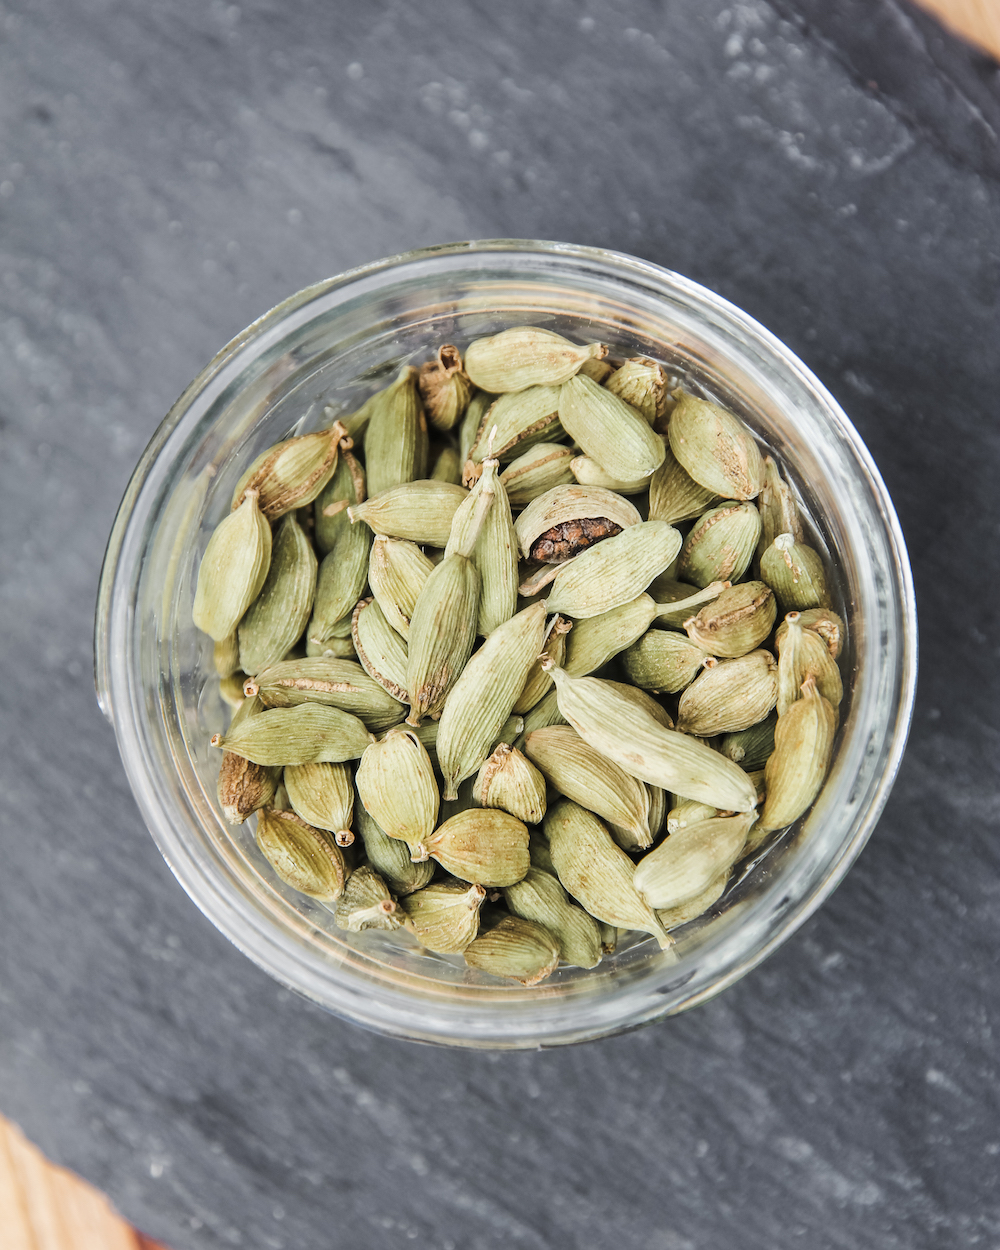 CARDAMOMGreen cardamom seeds bring a slightly sweet pine character to our traditional gin botanical base.